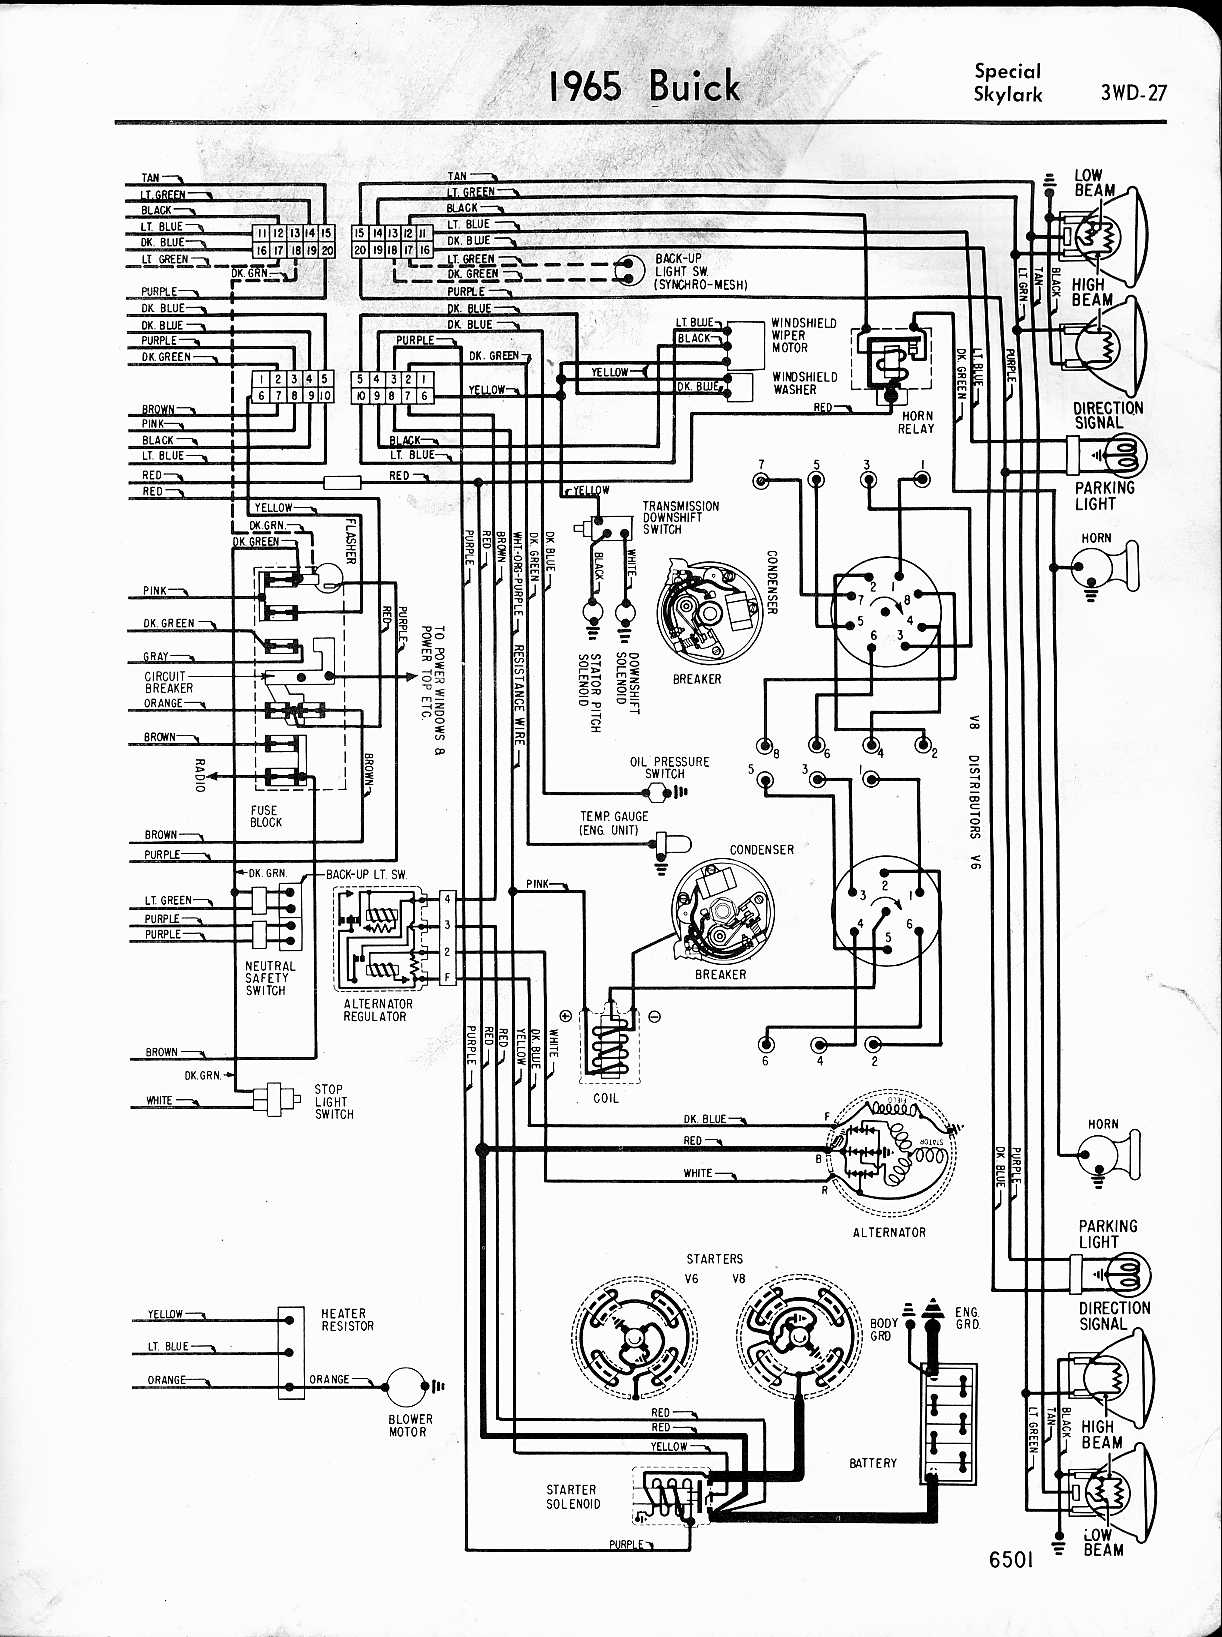 1972 Buick Wiring Diagrams Automotive Best Secret Diagram 2012 Scag Turf Tiger 1964 Skylark 1998 Regal Vehicle